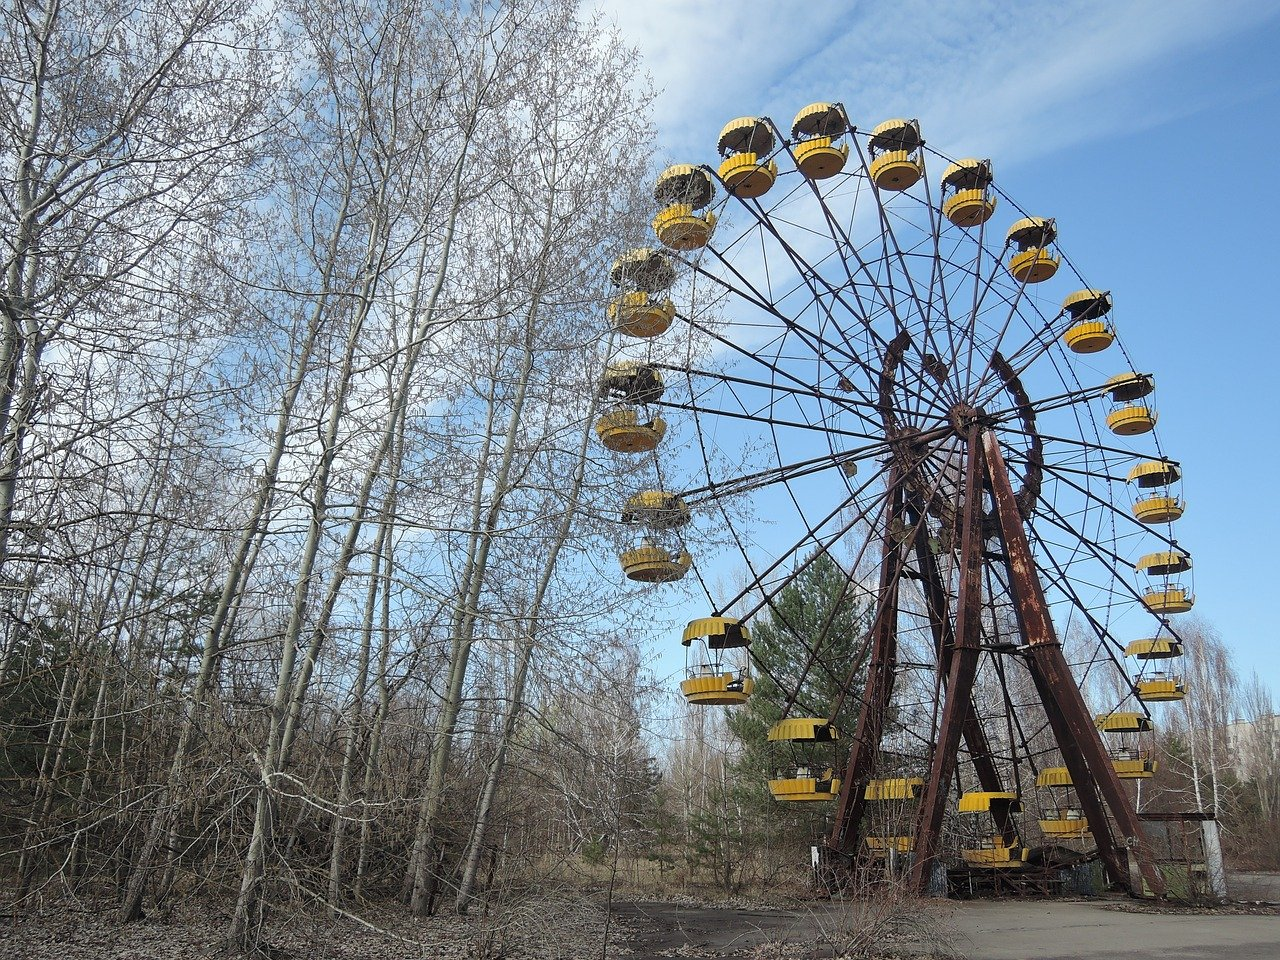 chernobyl today